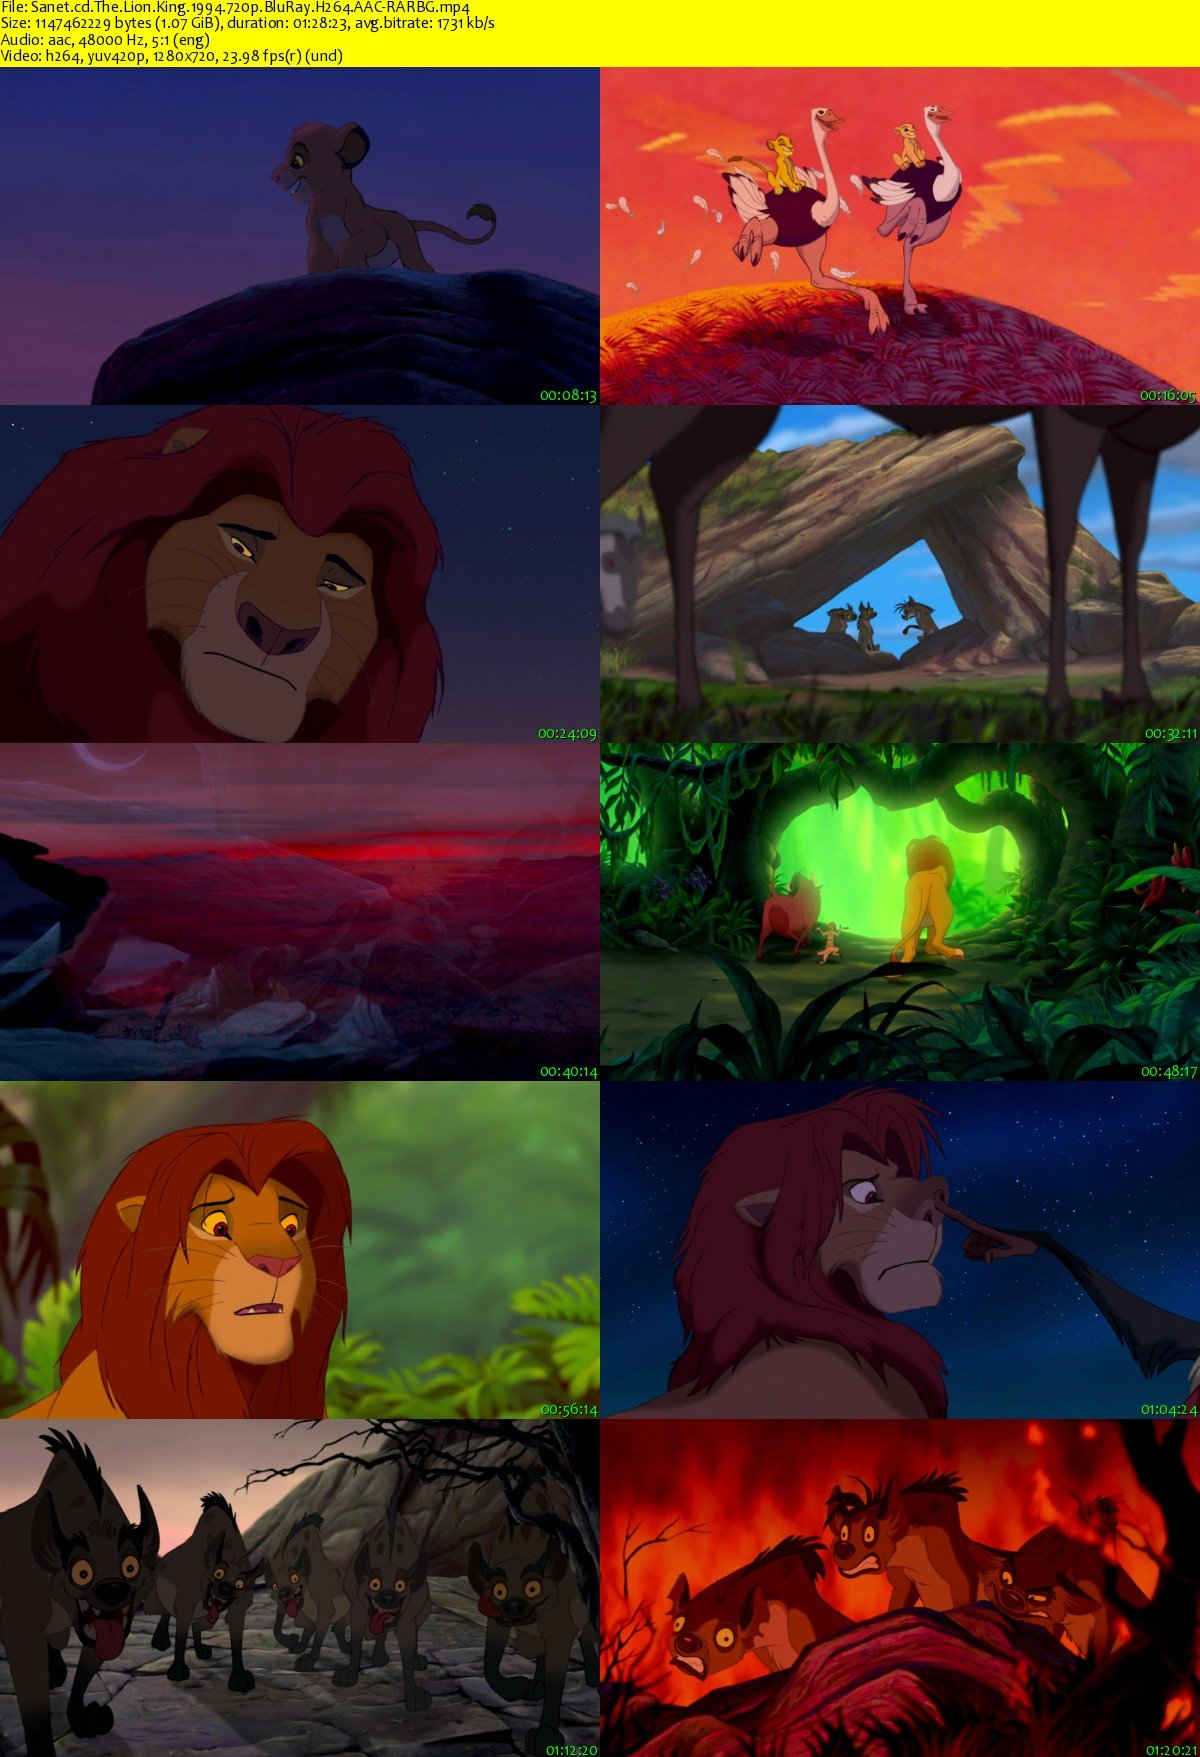 download the lion king 1994 720p bluray h264 aac